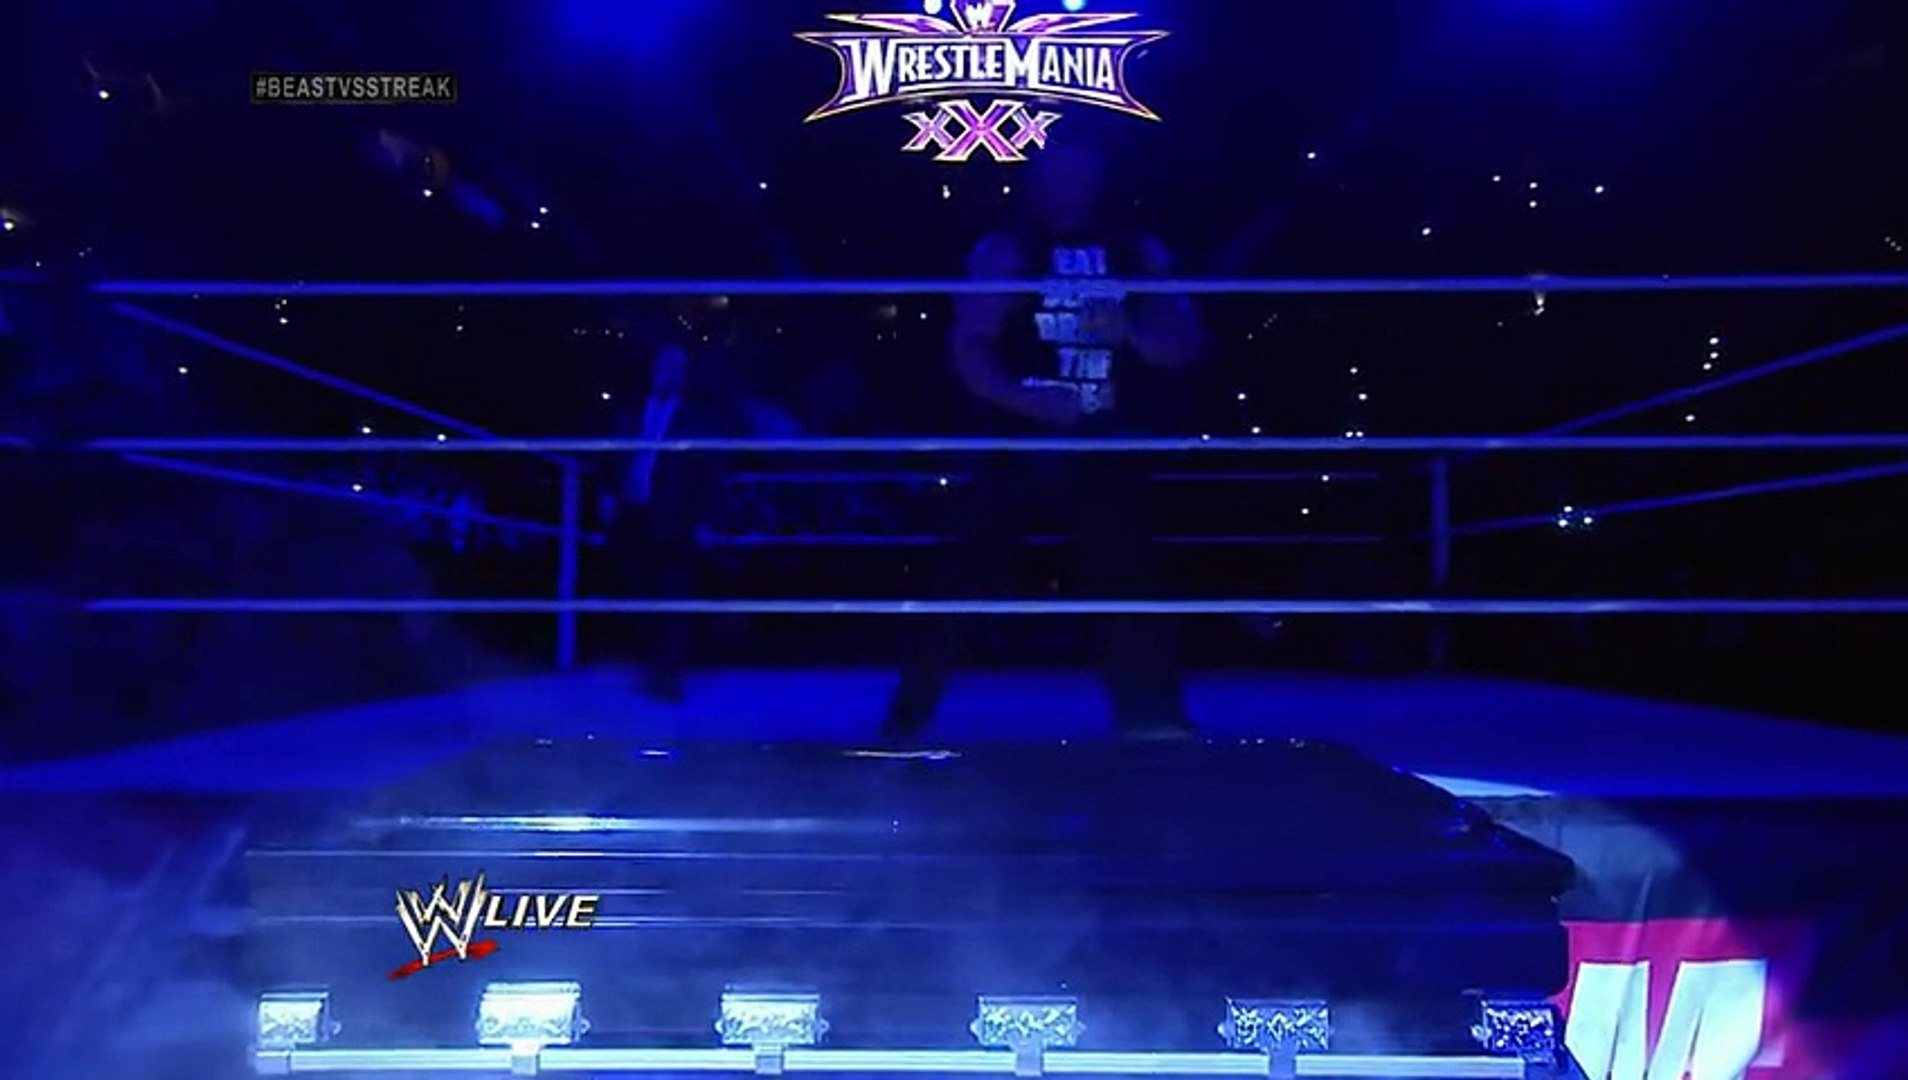 Undertaker rises from a coffin to attack Brock Lesnar- Raw, March 24, 2014